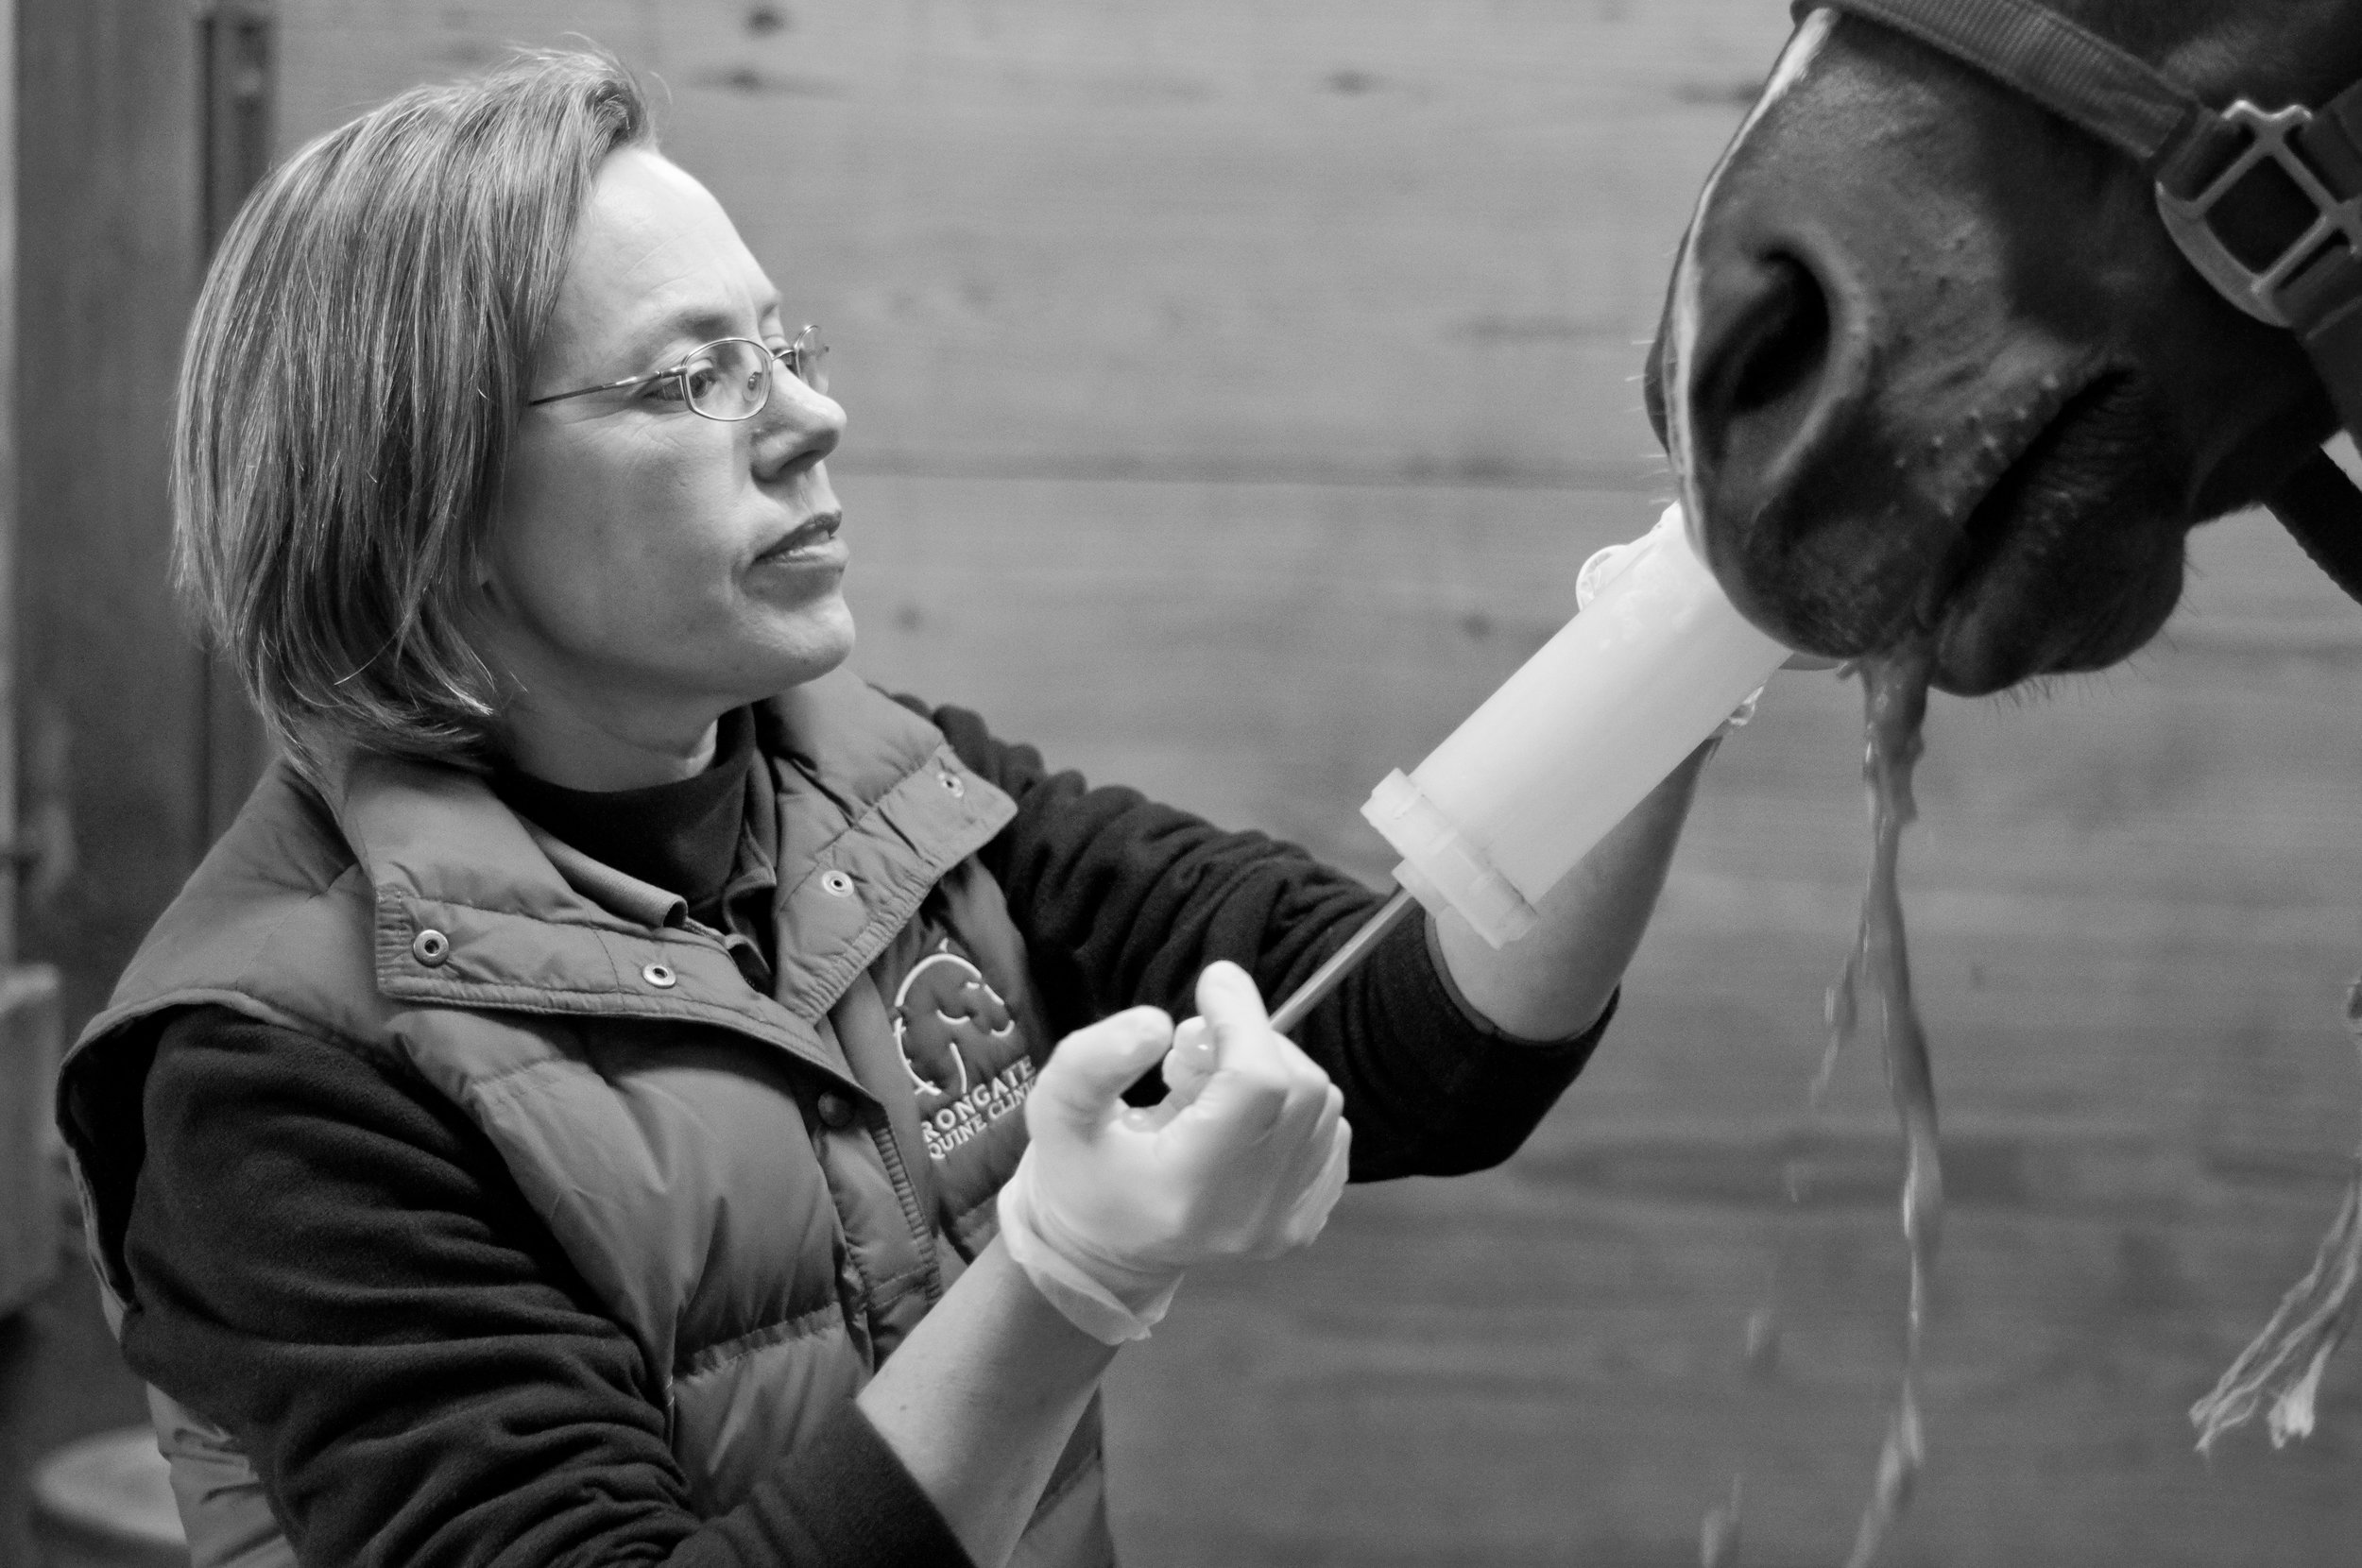 Dr. Nesson flushing debris from the horse's mouth to allow for a full examination.